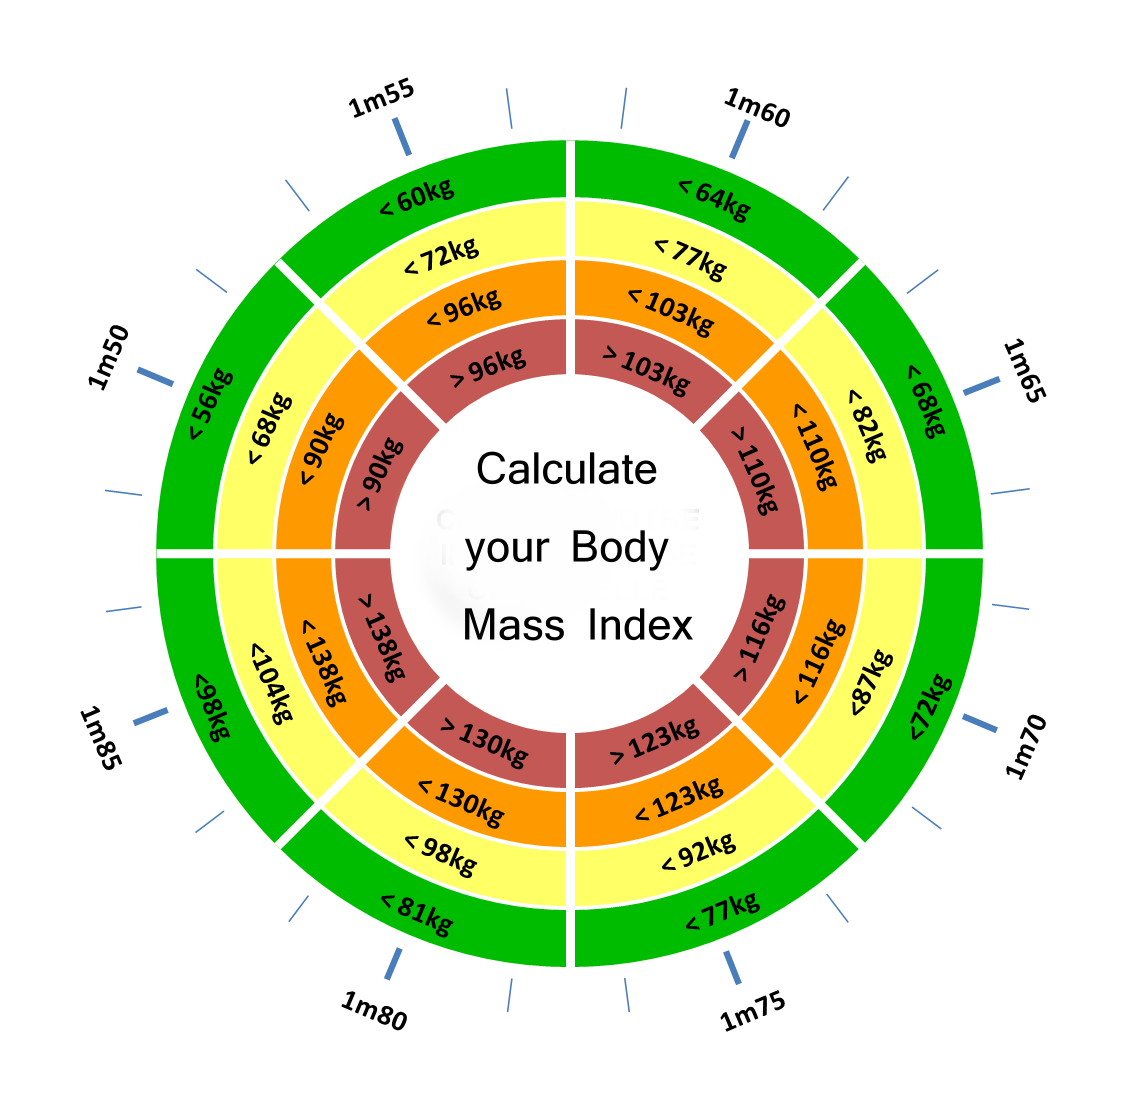 Weight Loss And Calculating Body Mass Index Weight Loss Programs